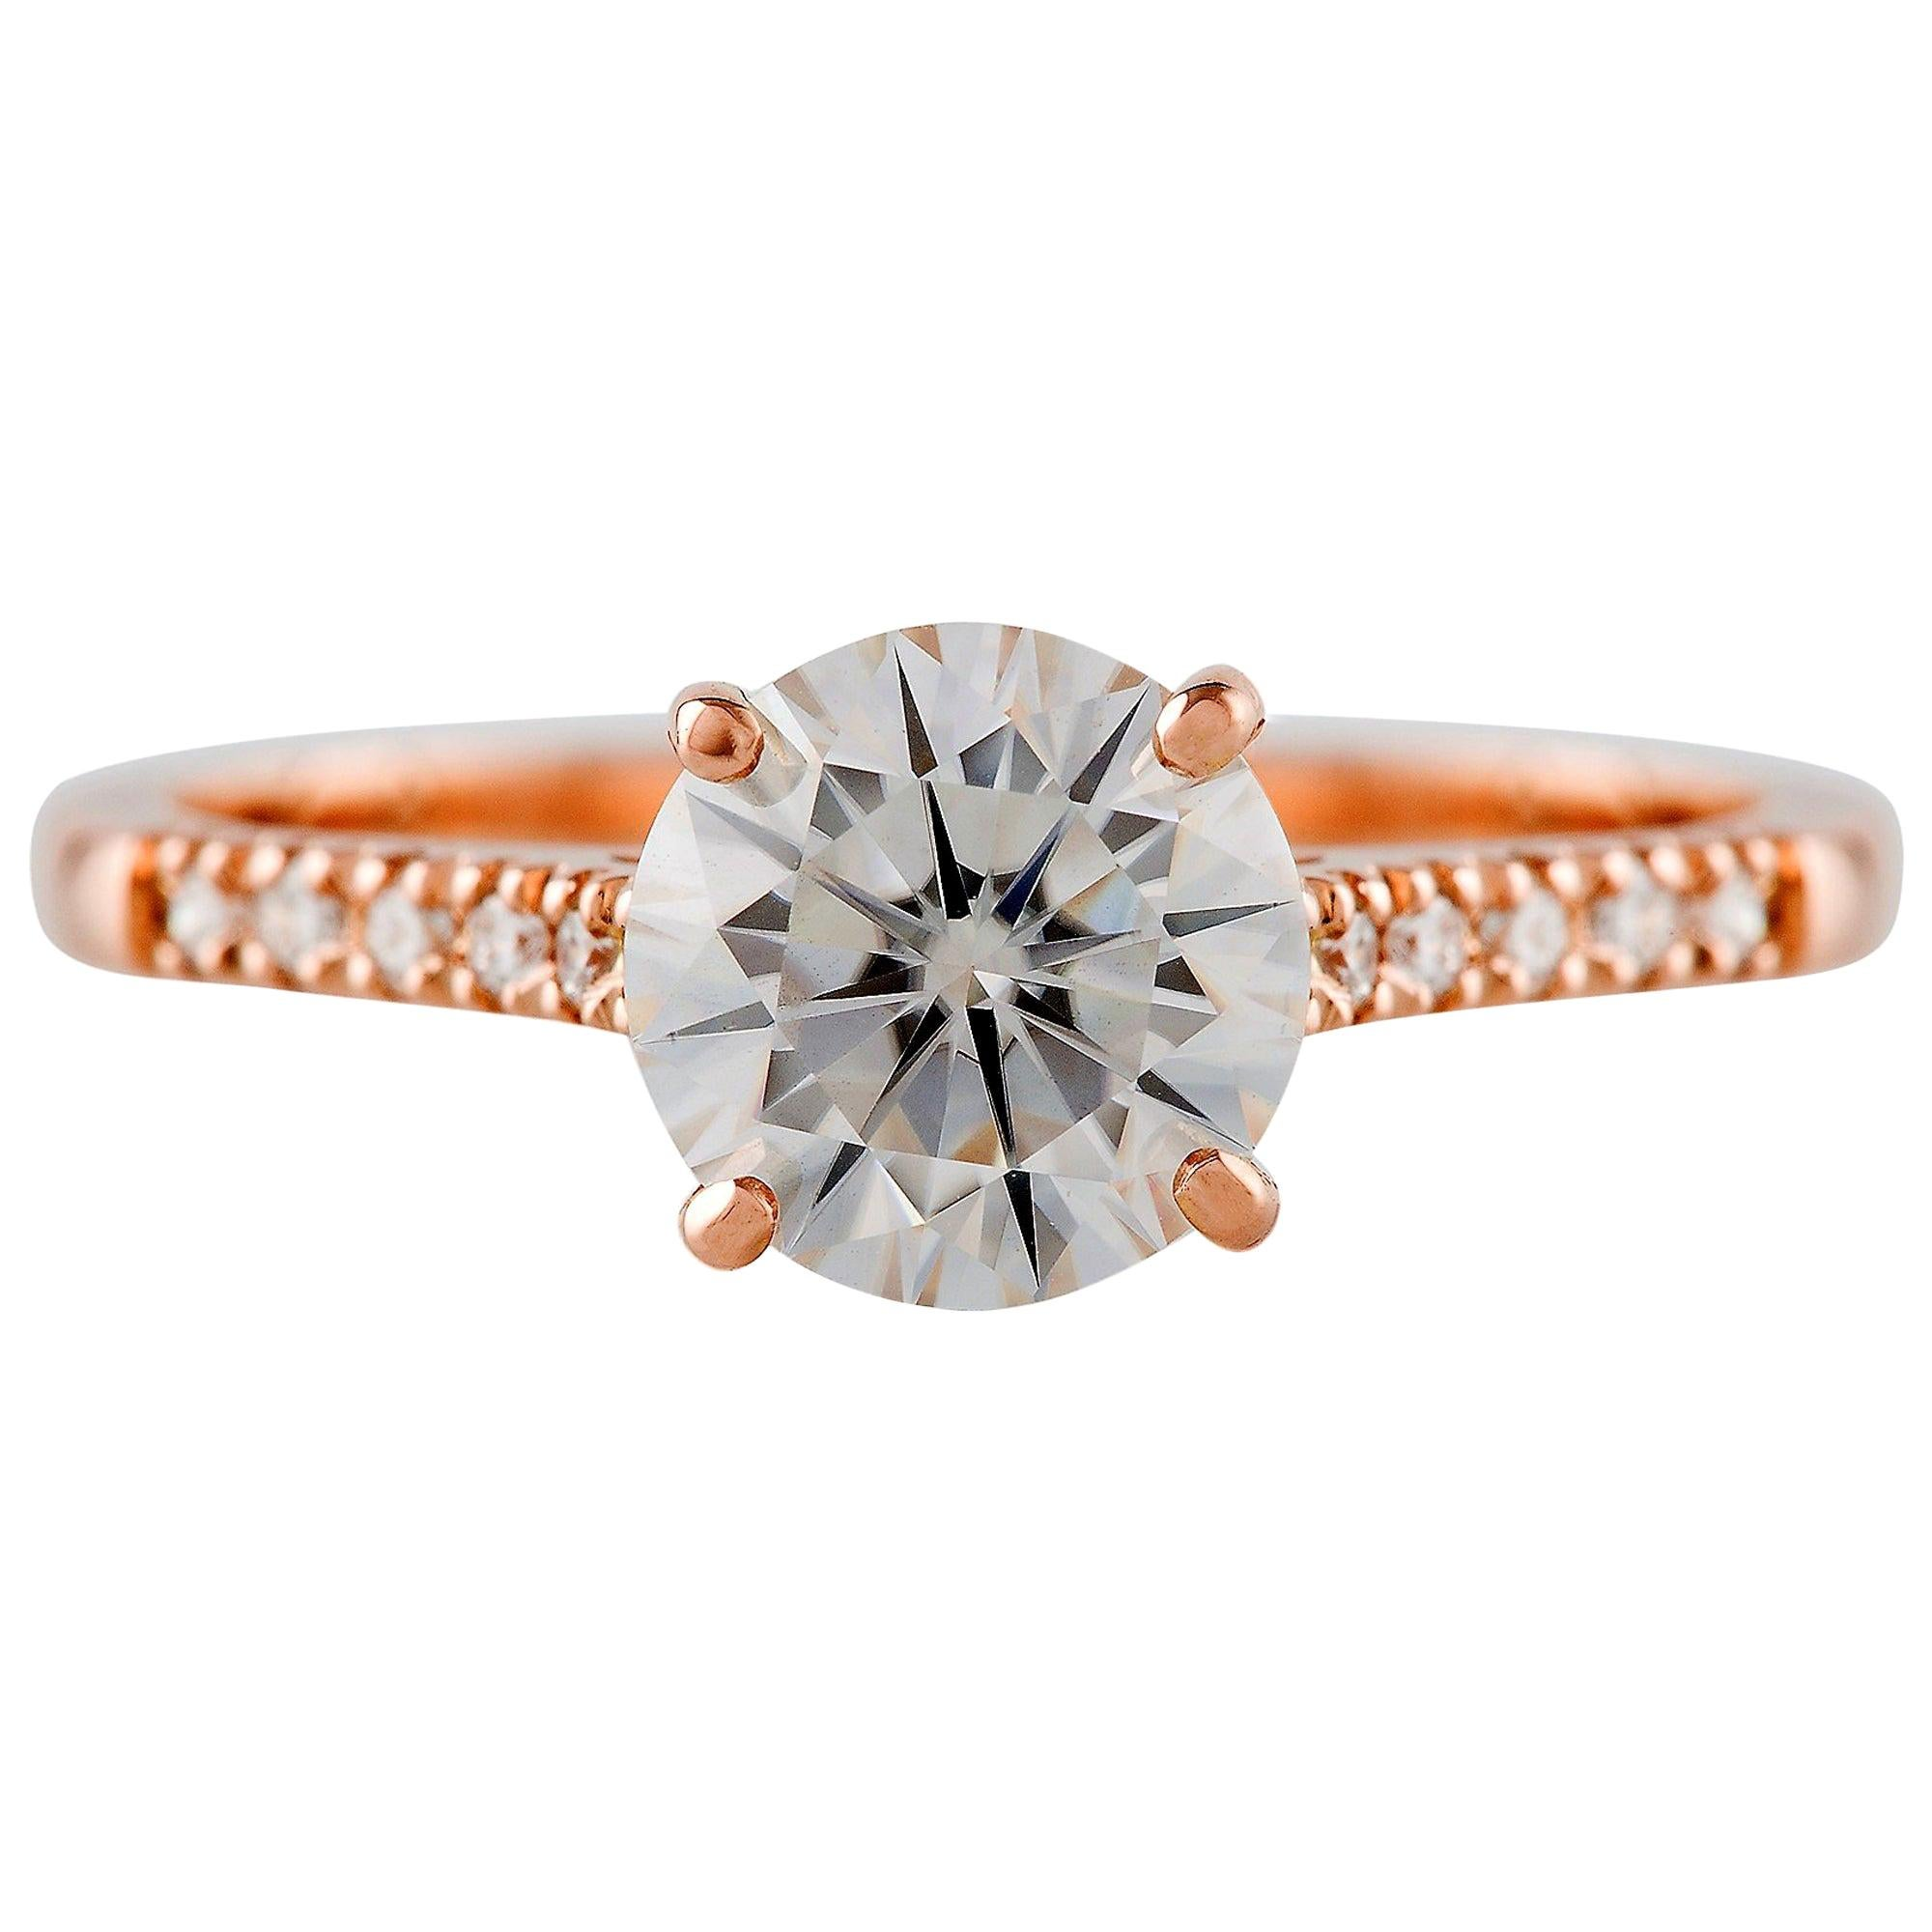 Kian Design GIA Certified 1.5 Carat Round Diamond Engagement Ring in Rose Gold